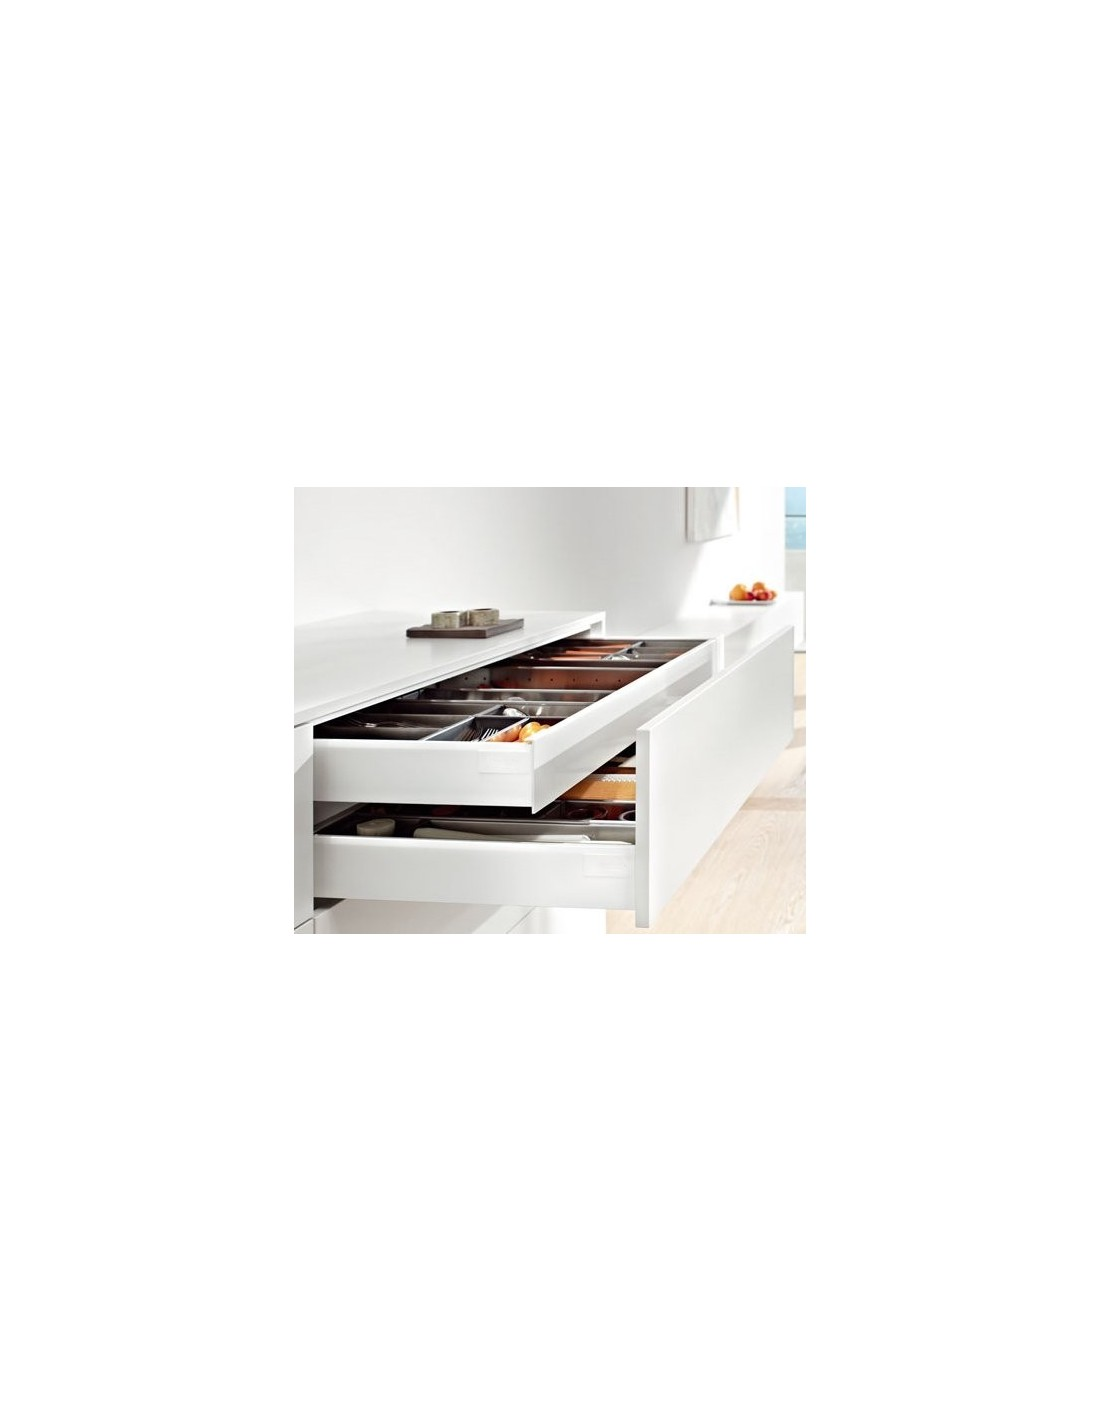 Easy order blum antaro internal drawer shallow depth 300 for Kitchen cabinets 500mm depth